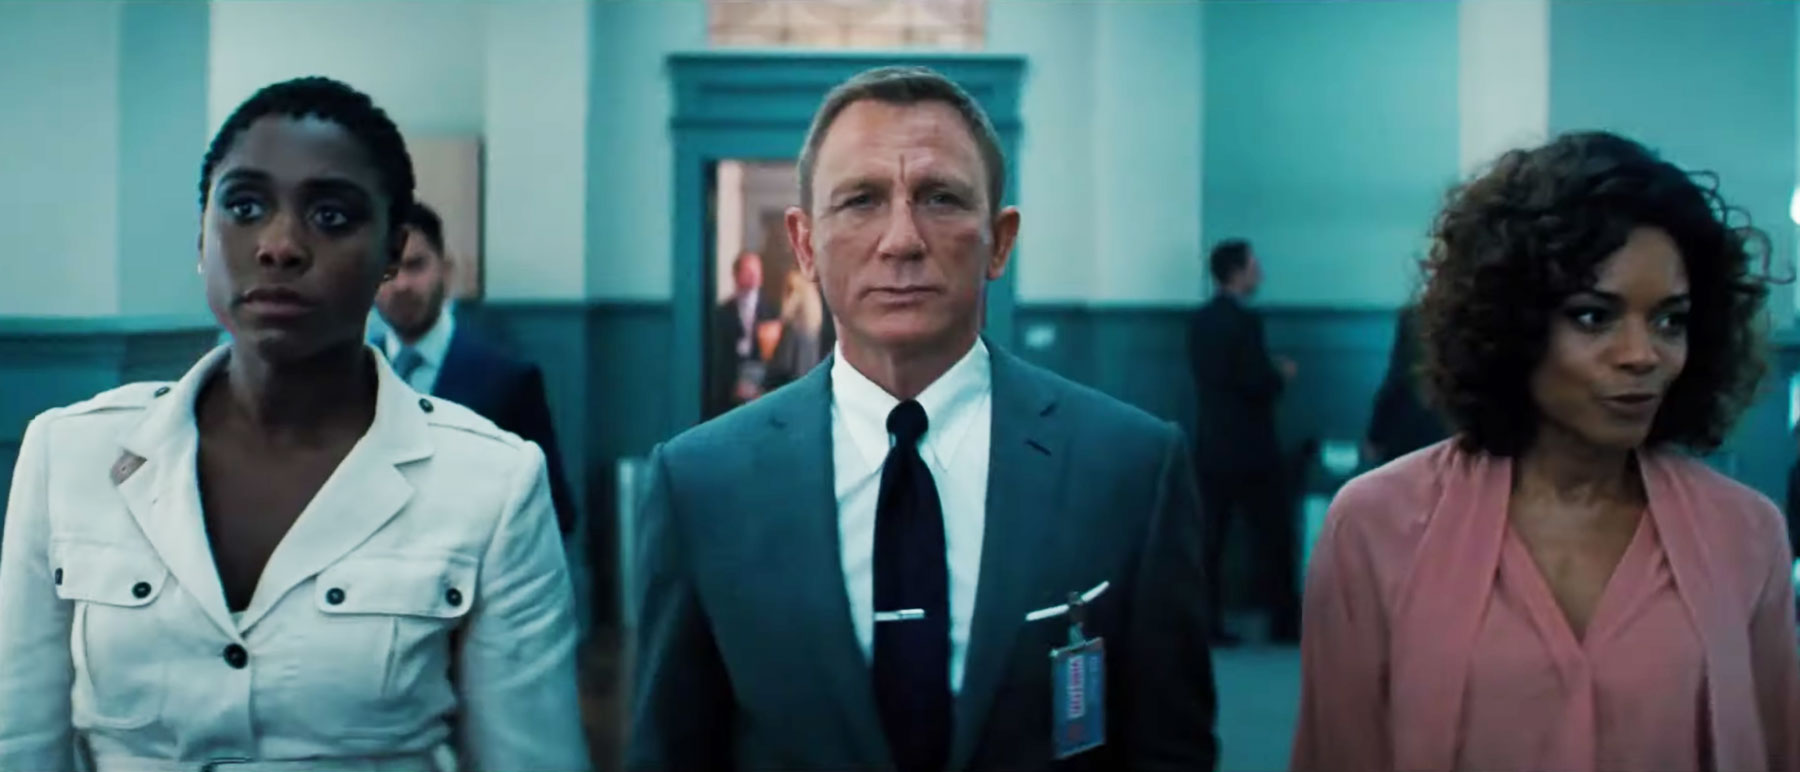 Daniel Craig is back a James Bond in No Time To Die